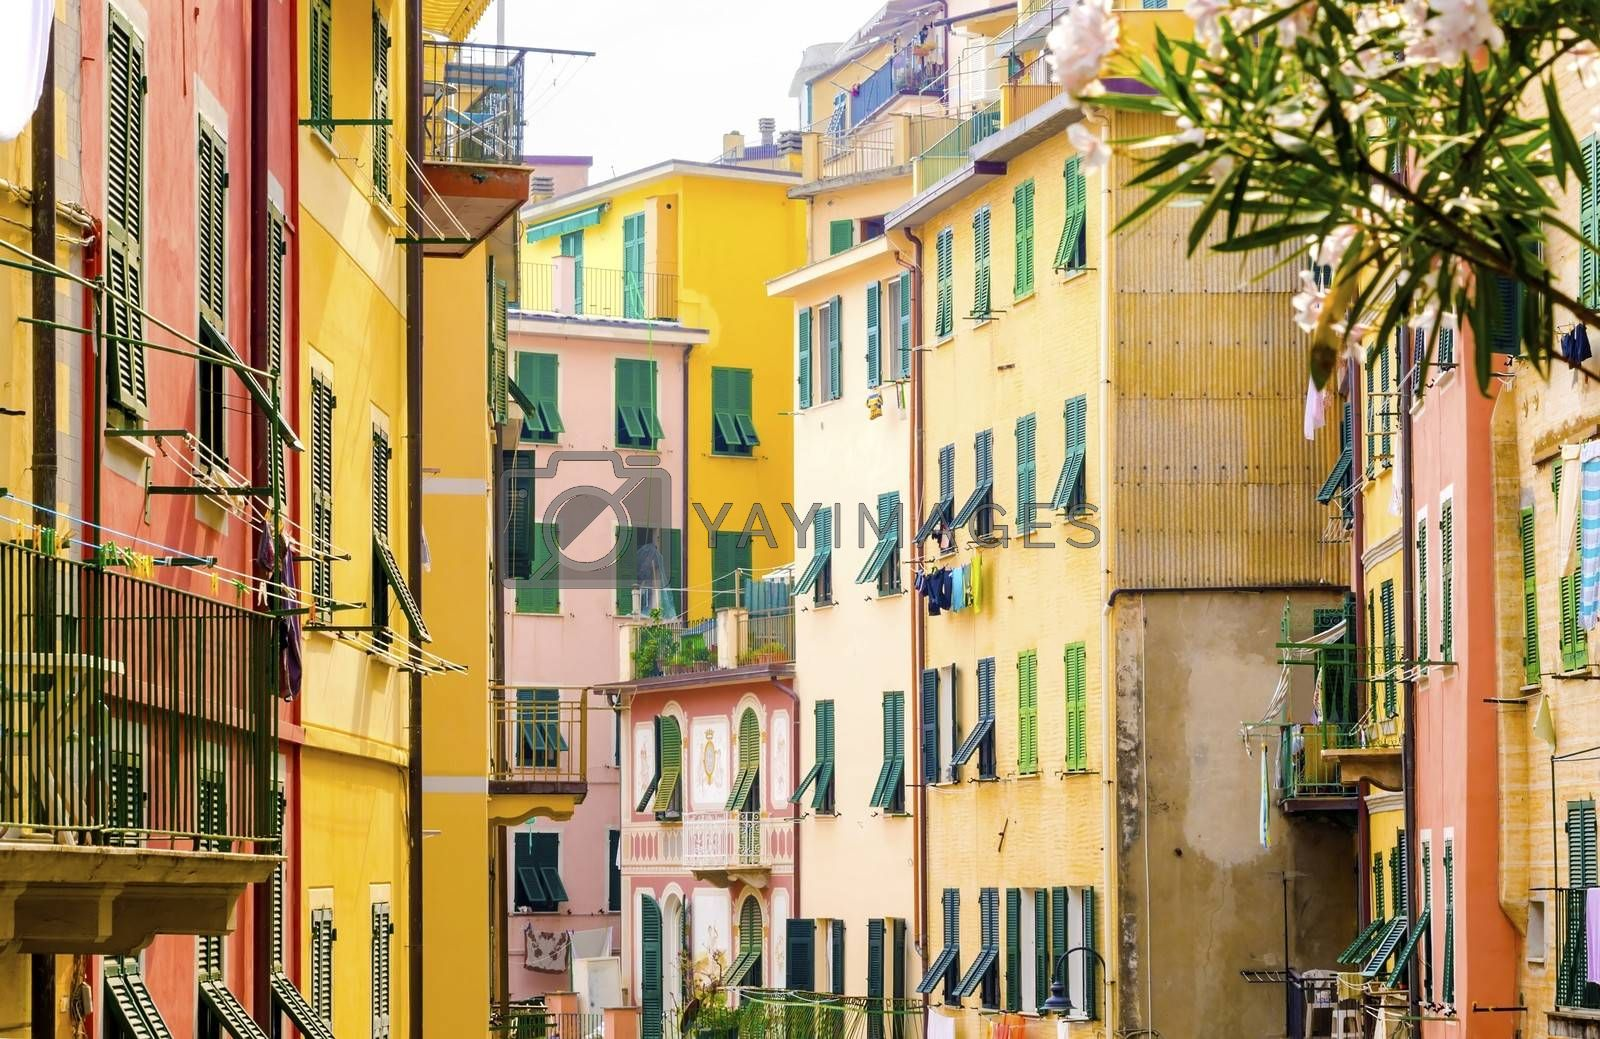 Riomaggiore village, La Spezia province, Liguria, northern Italy. View of the colourful houses on steep hills and laundry on balconies. Part of the Cinque Terre National Park and a UNESCO World Heritage Site.